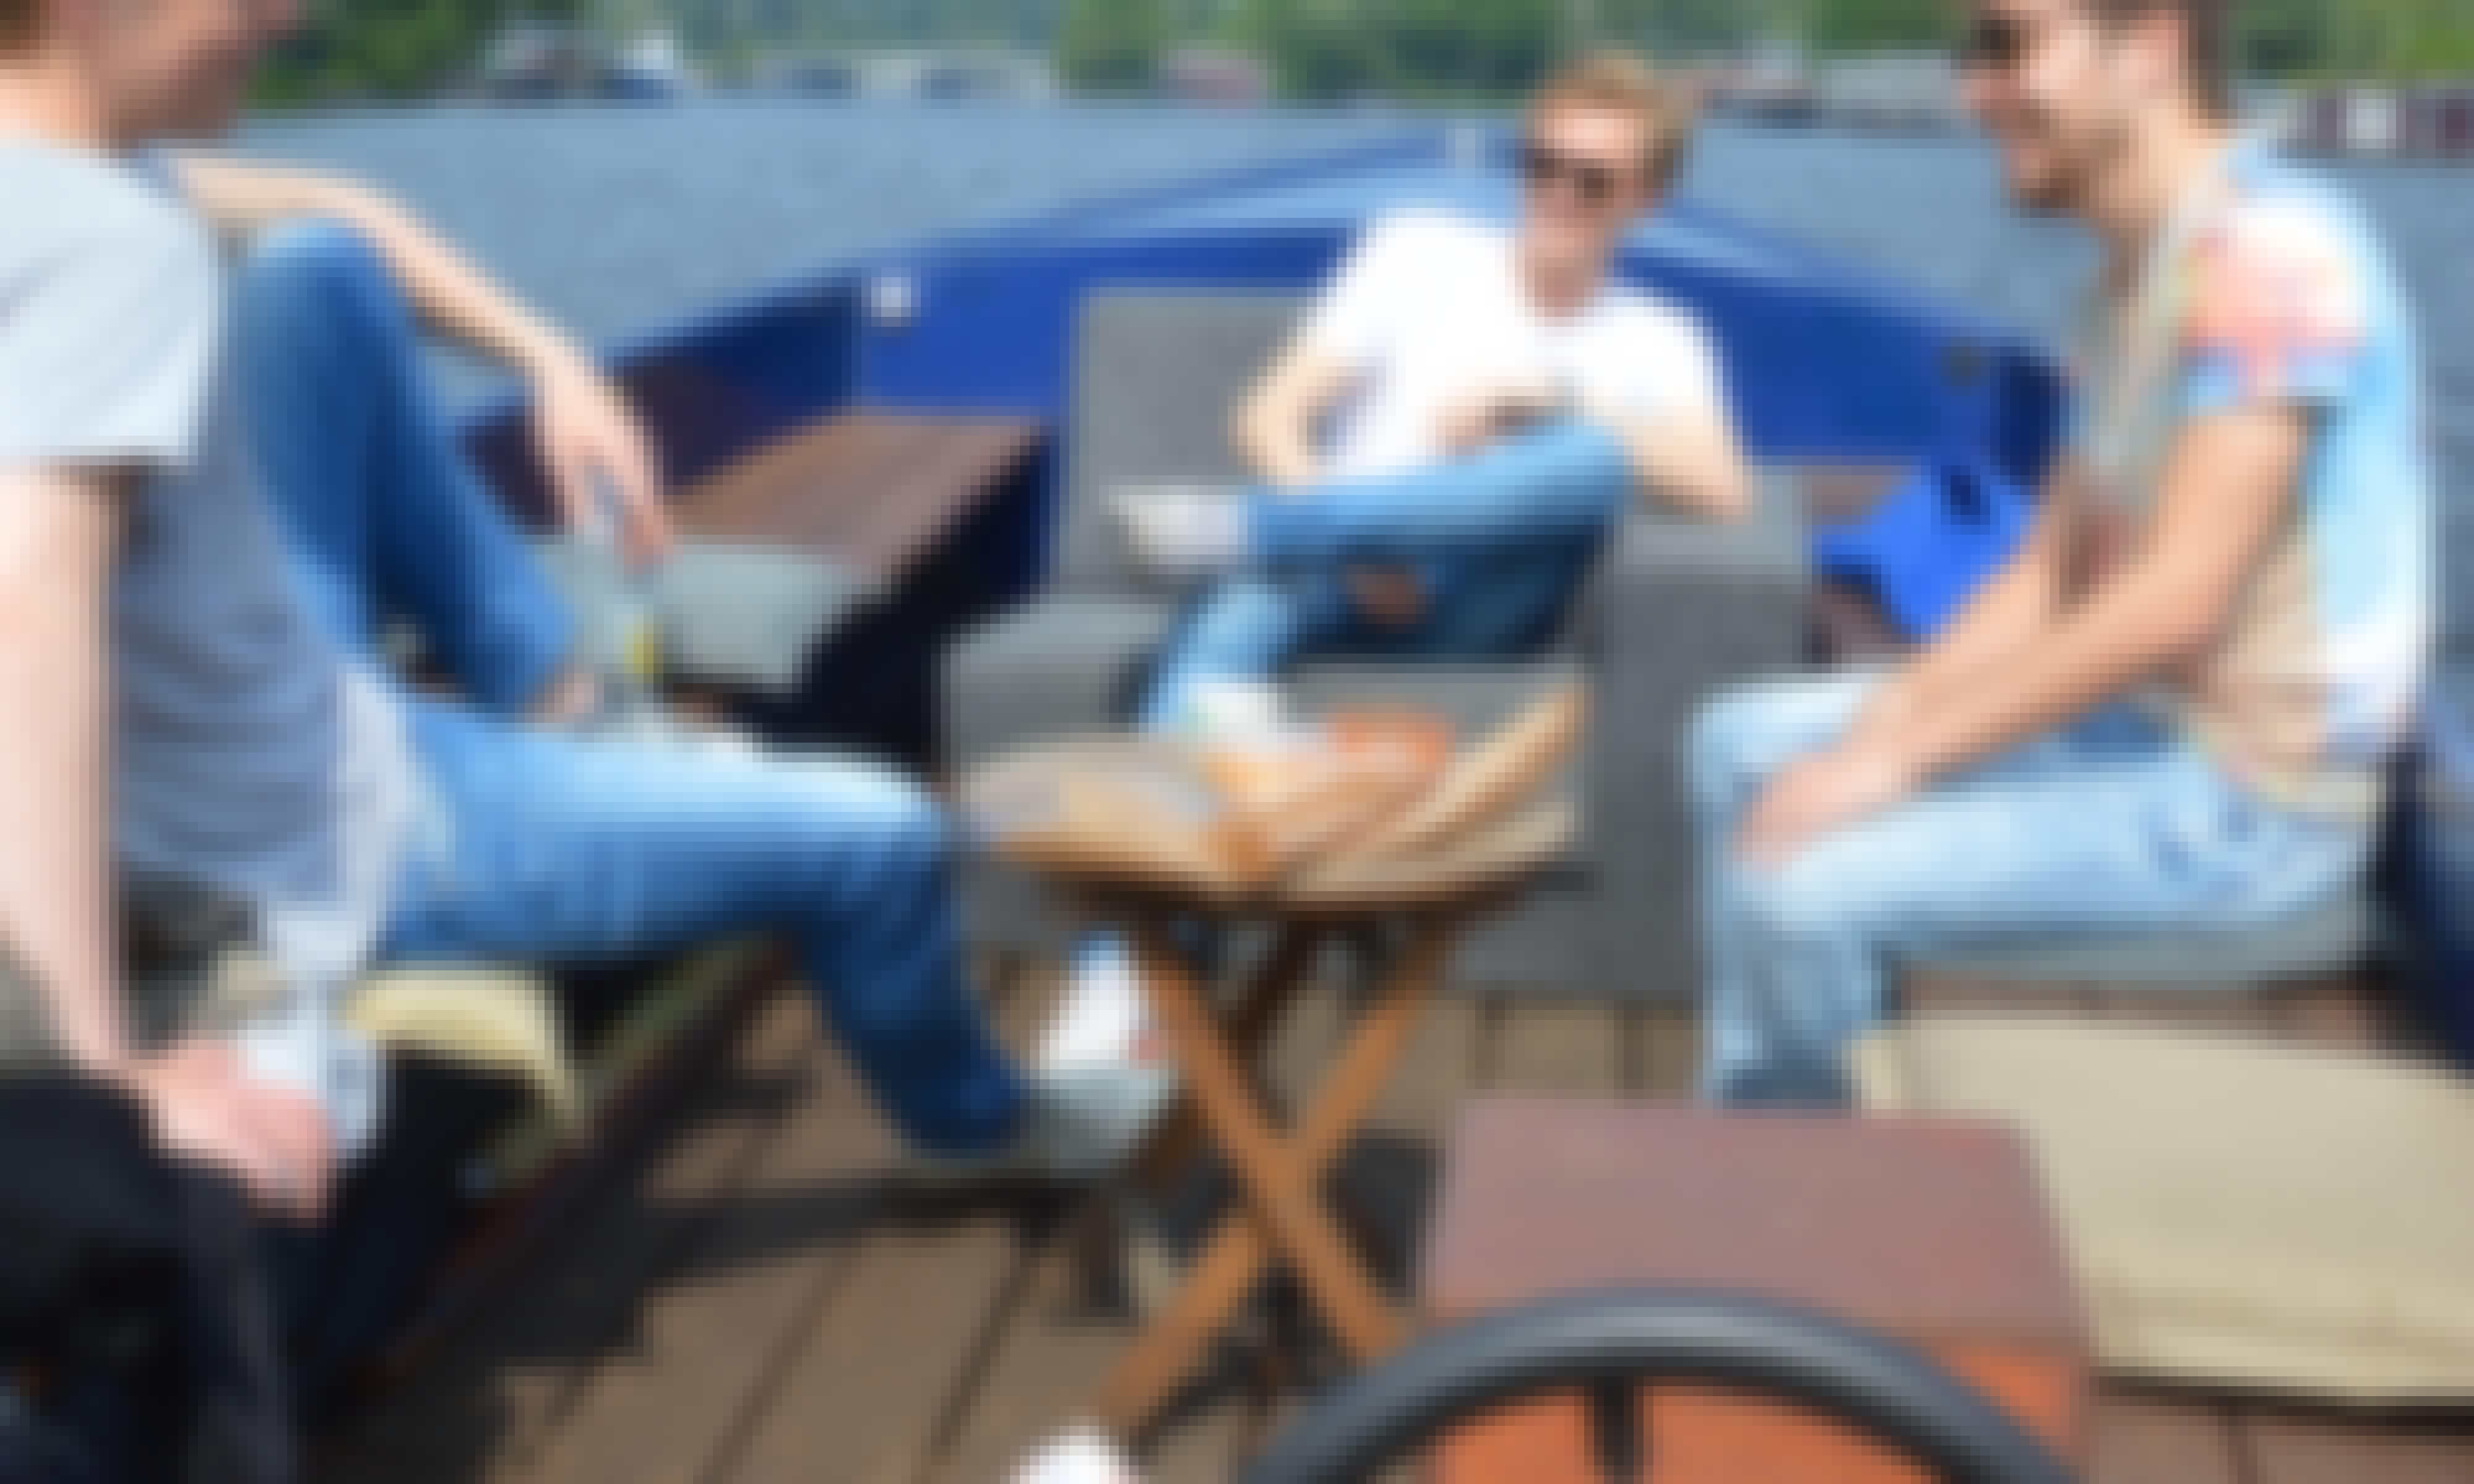 Rent a 22 ft Dinghy for 12 People in Amsterdam, Netherlands